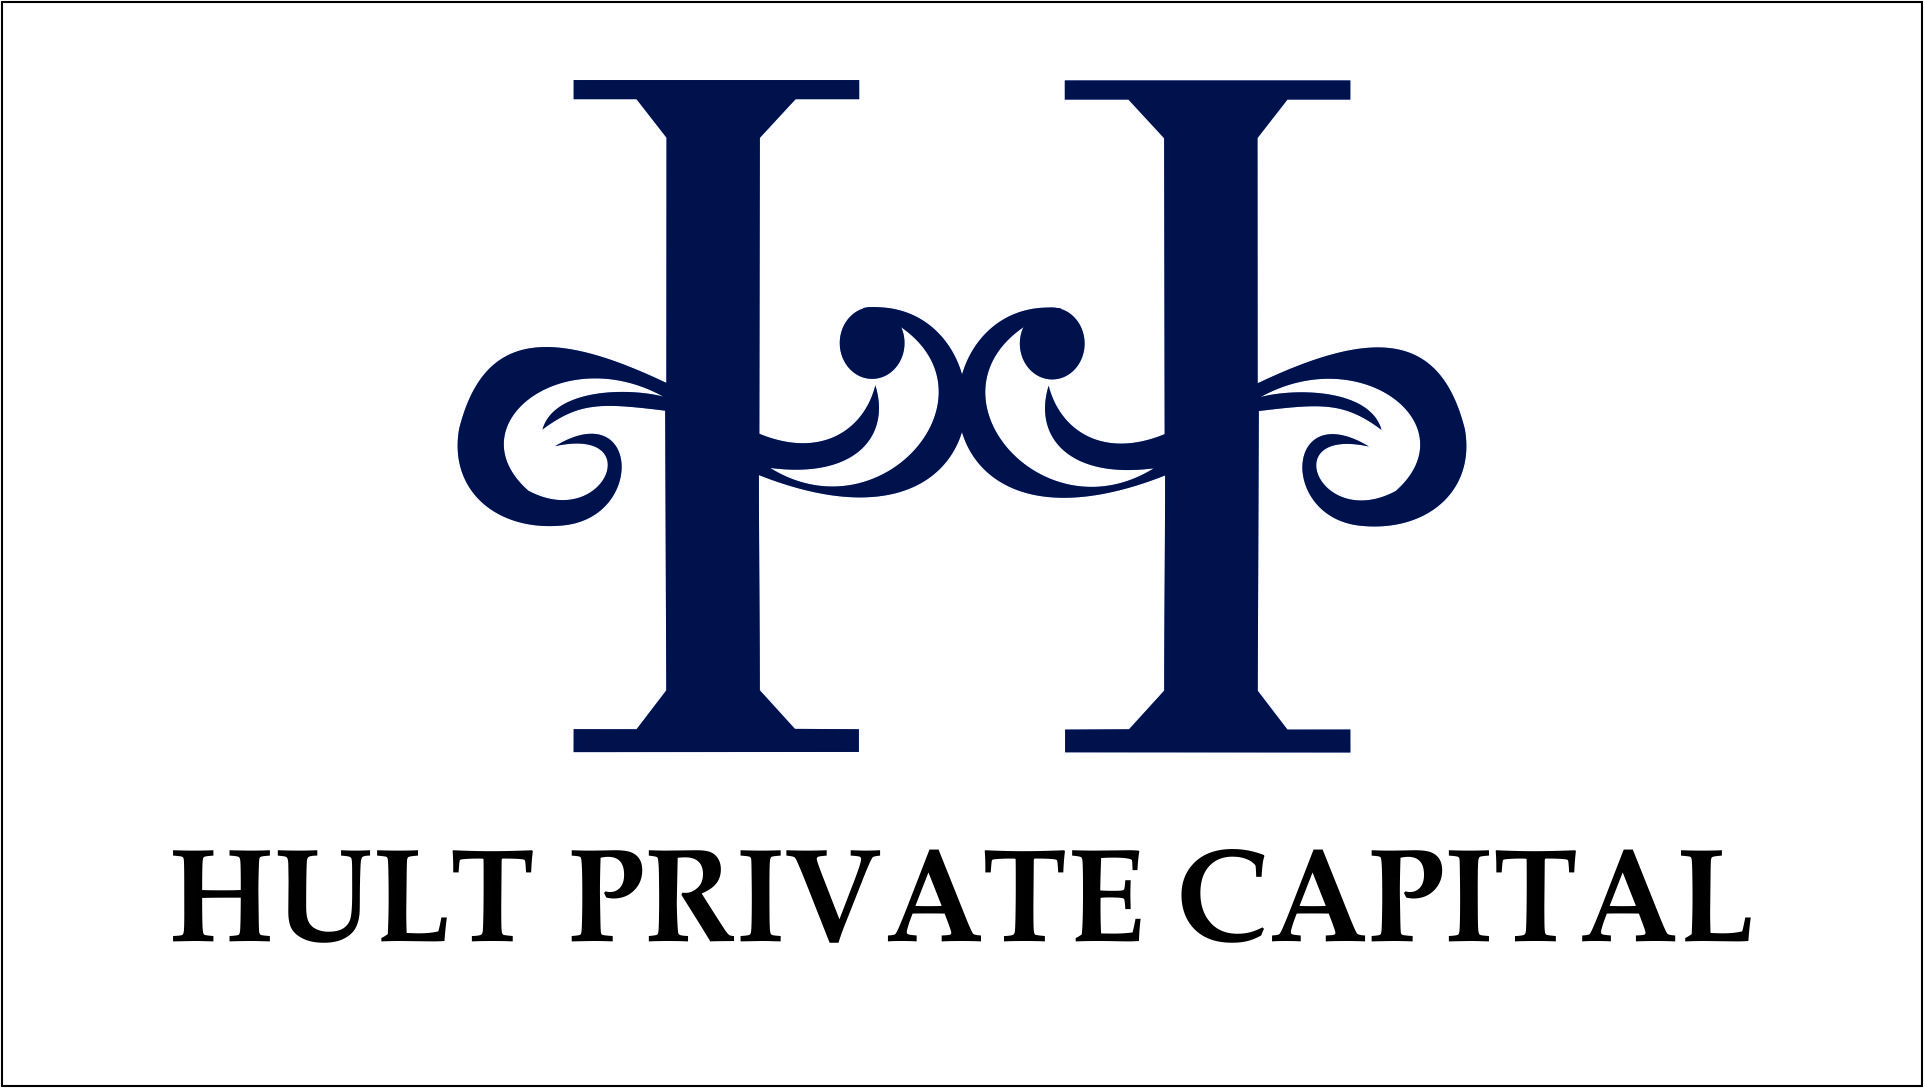 HULT Private Capital